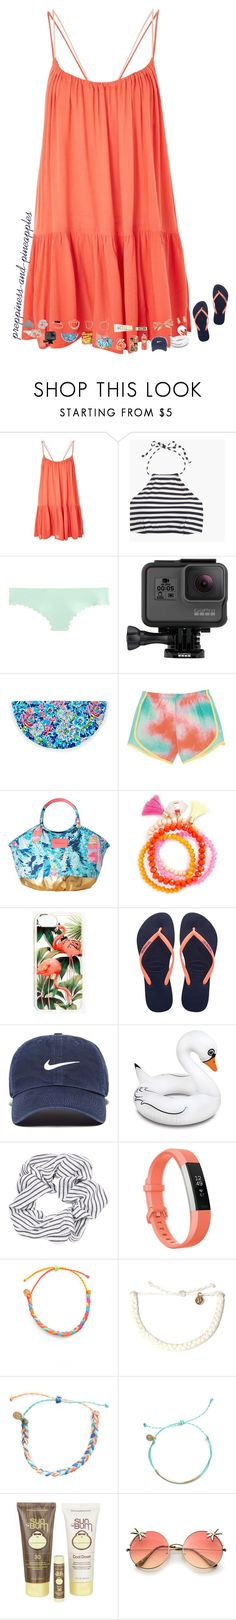 """✧ and I'm back!"" by preppiness-and-pineapples ❤ liked on Polyvore featuring Topshop, J.Crew, GoPro, Lilly Pulitzer, Panacea, Madewell, Havaianas, NIKE, BigMouth and Fitbit"